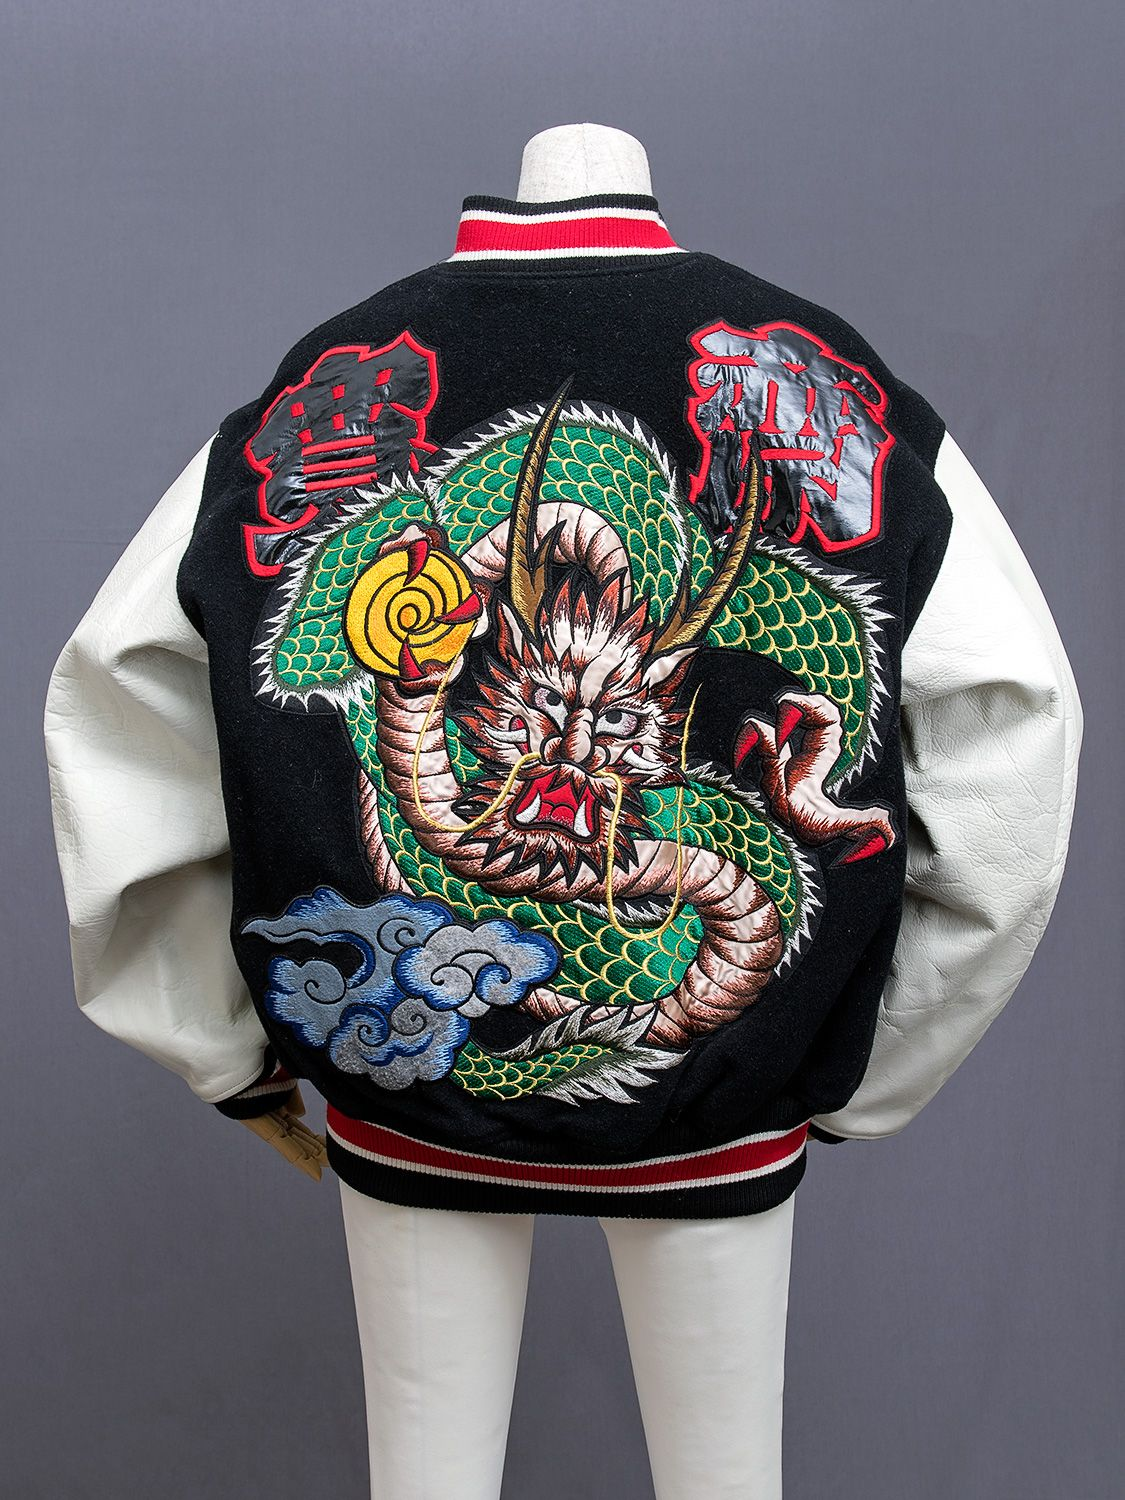 978eac05c Kansai Yamamoto (山本寛斎) embroidered dragon stadium jacket. This is a Kansai  Man piece, believed to be early 1990s. Large single dragon and